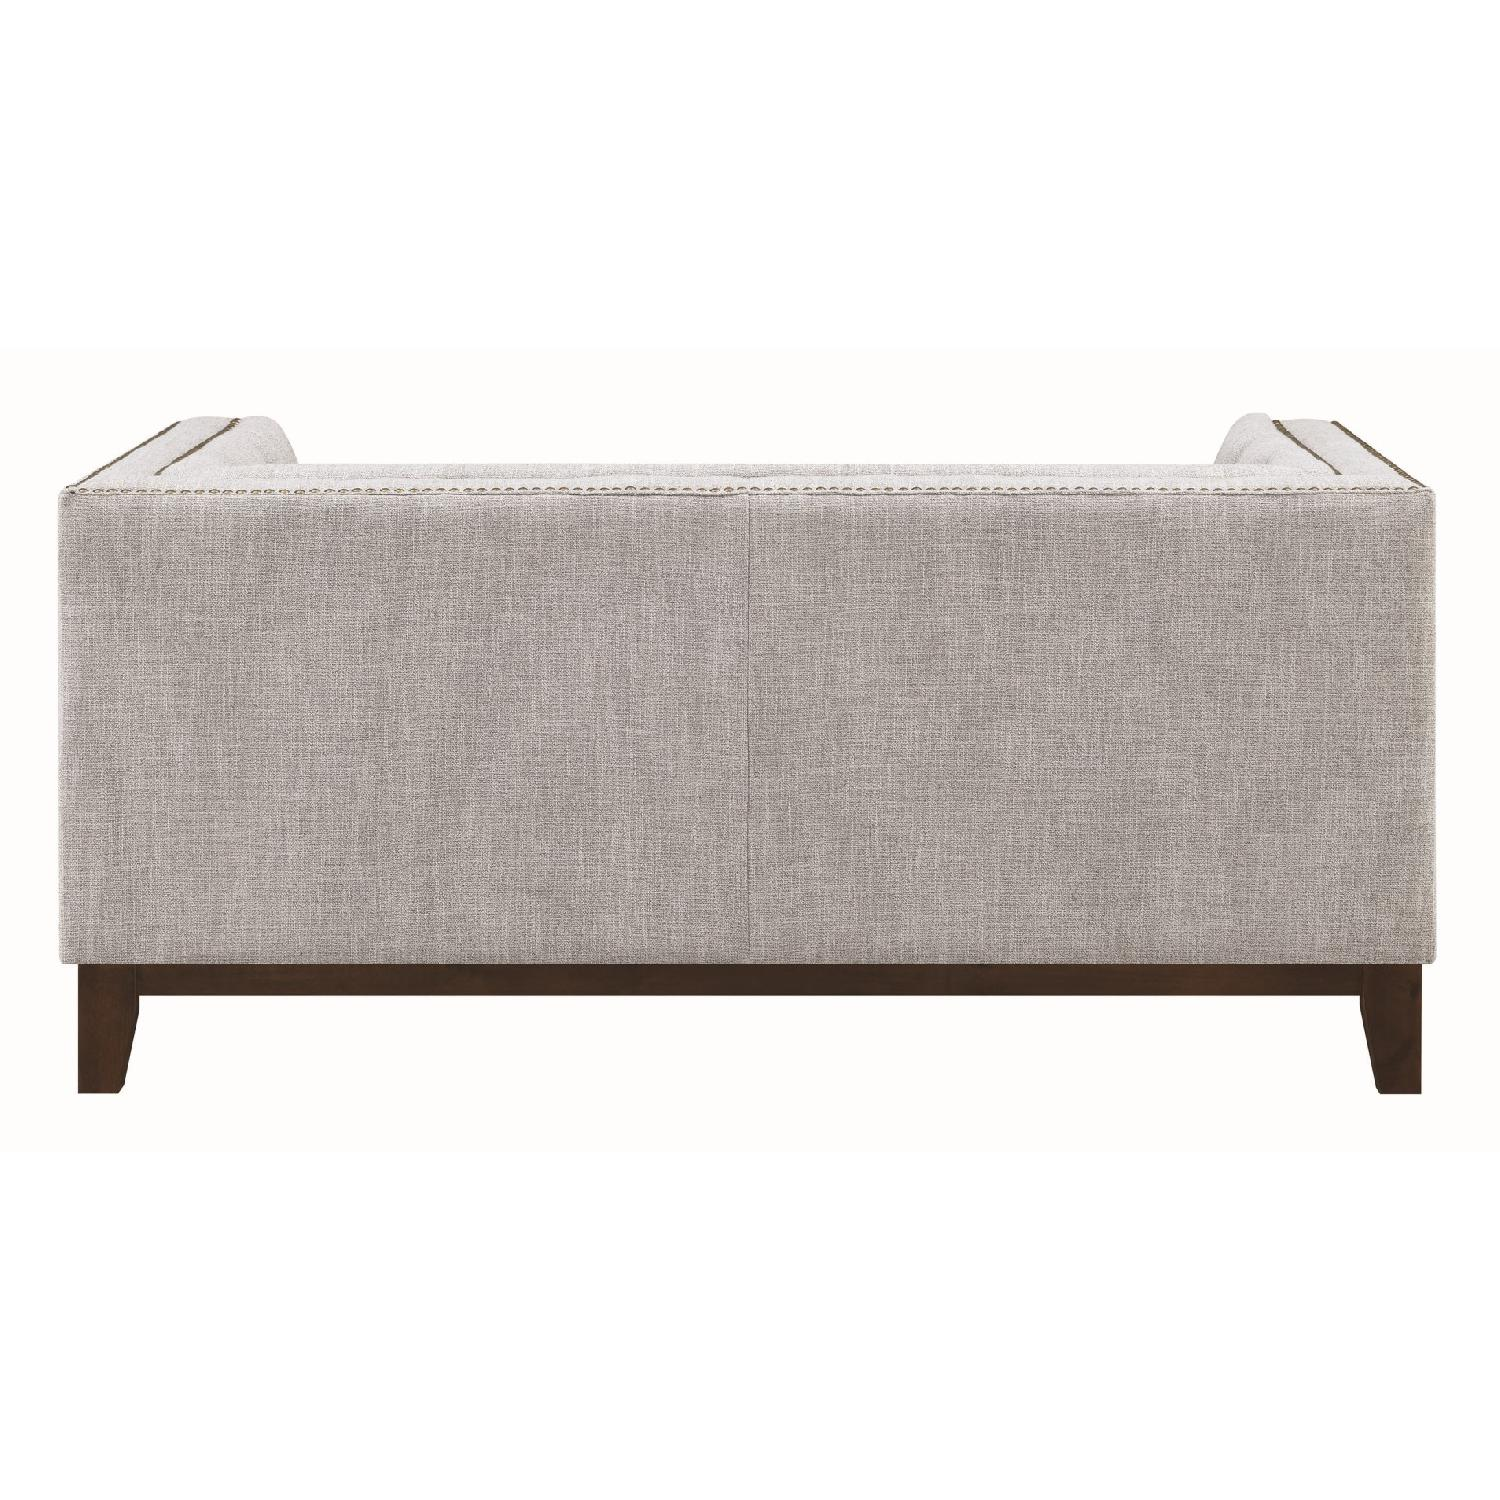 Modern Style Loveseat w/ Tufted Buttons & Nailhead Accent - image-1